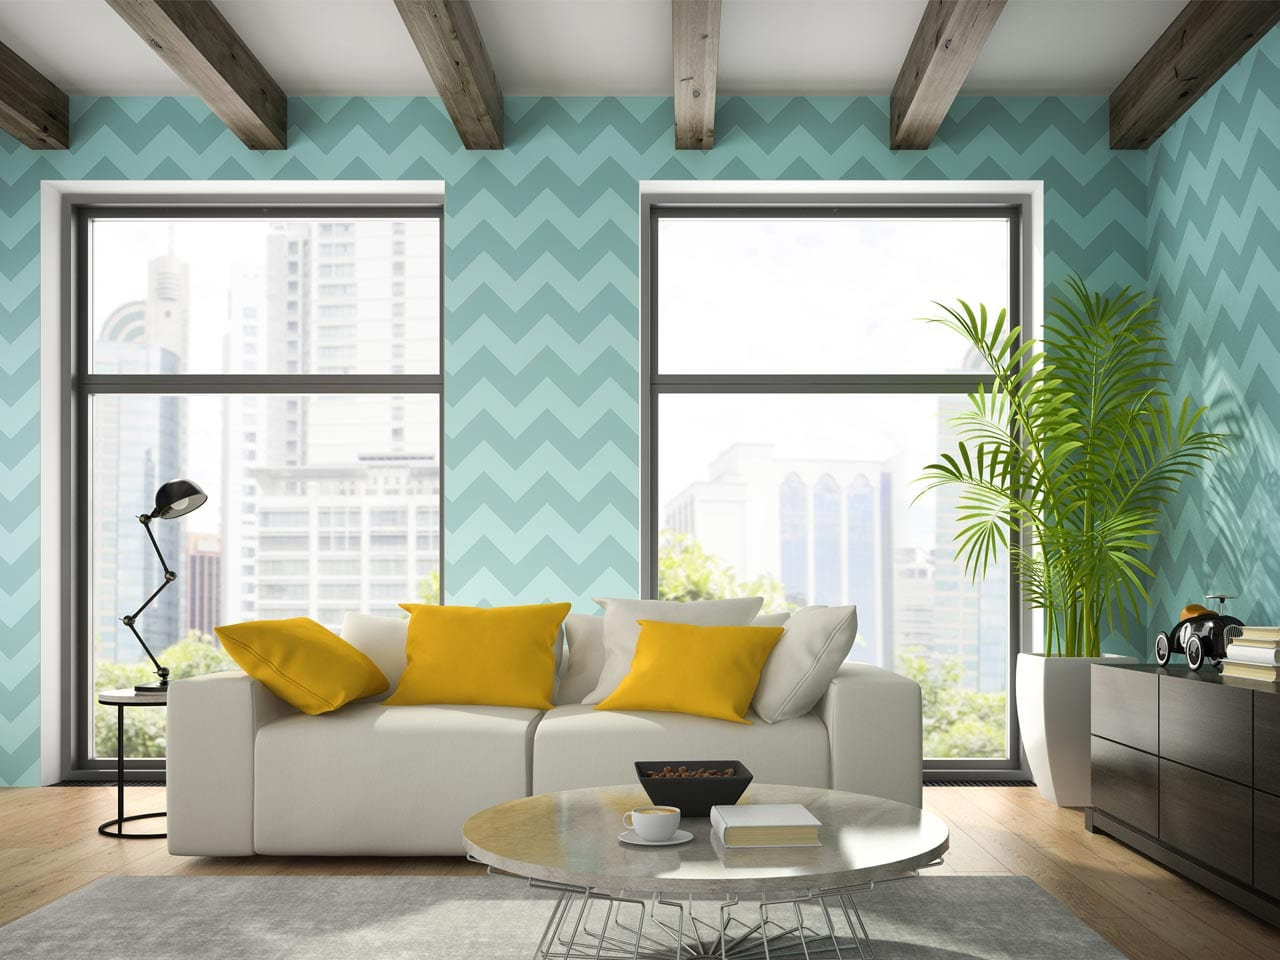 Dramatic Wall Paper - Wall Coverings - Helm Paint & Decorating